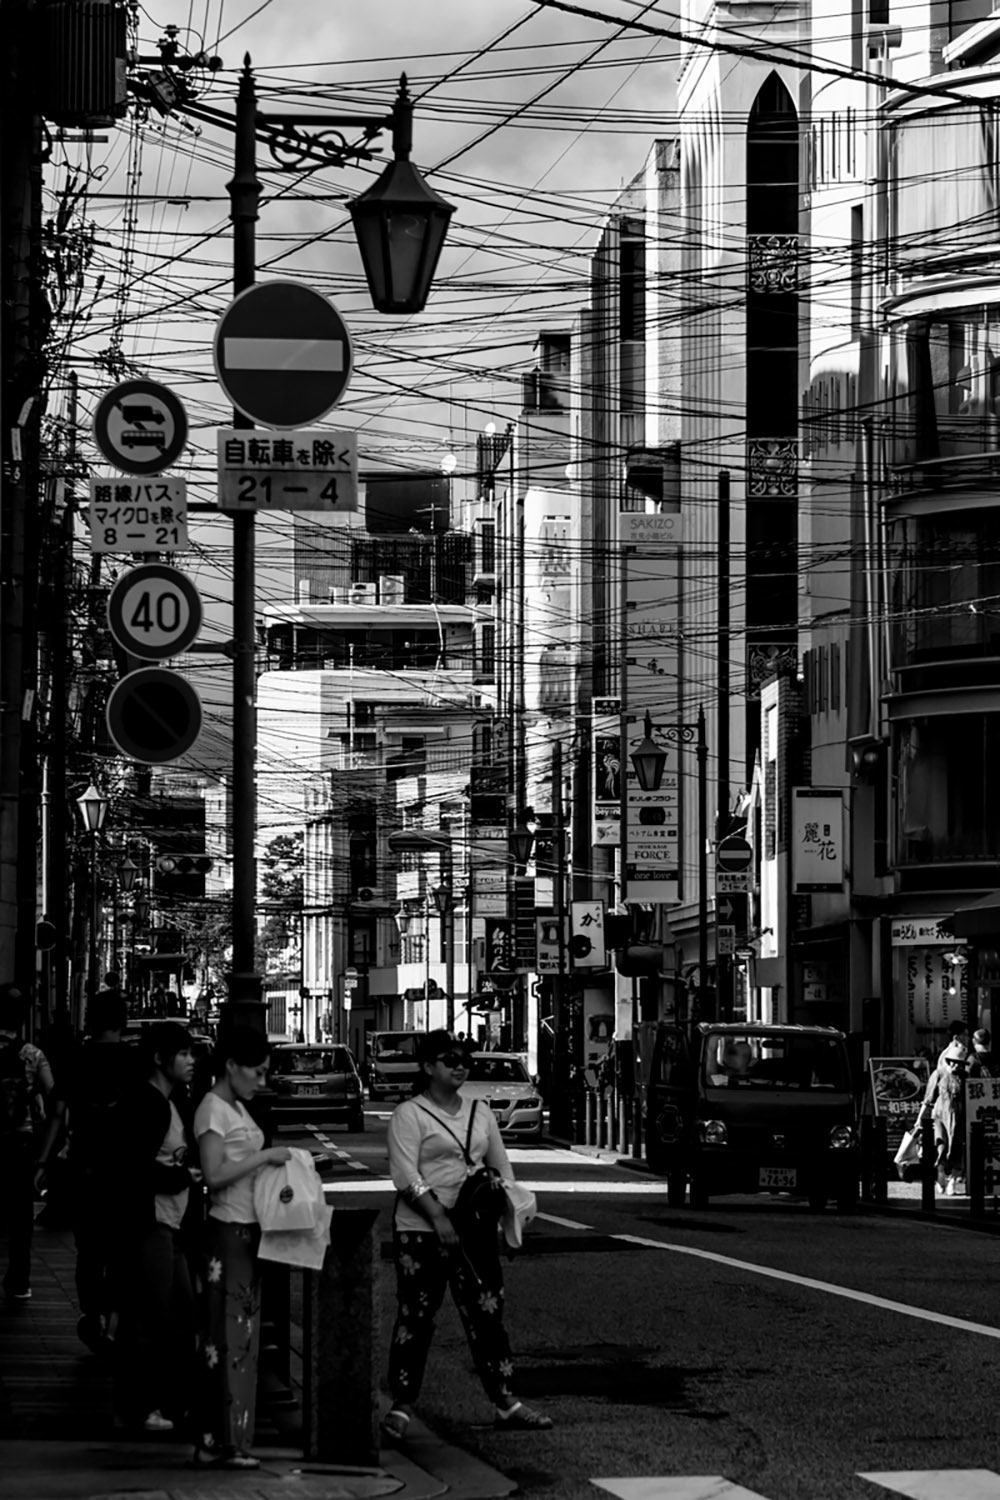 Just a trip - Japan | Andreas Theologitis